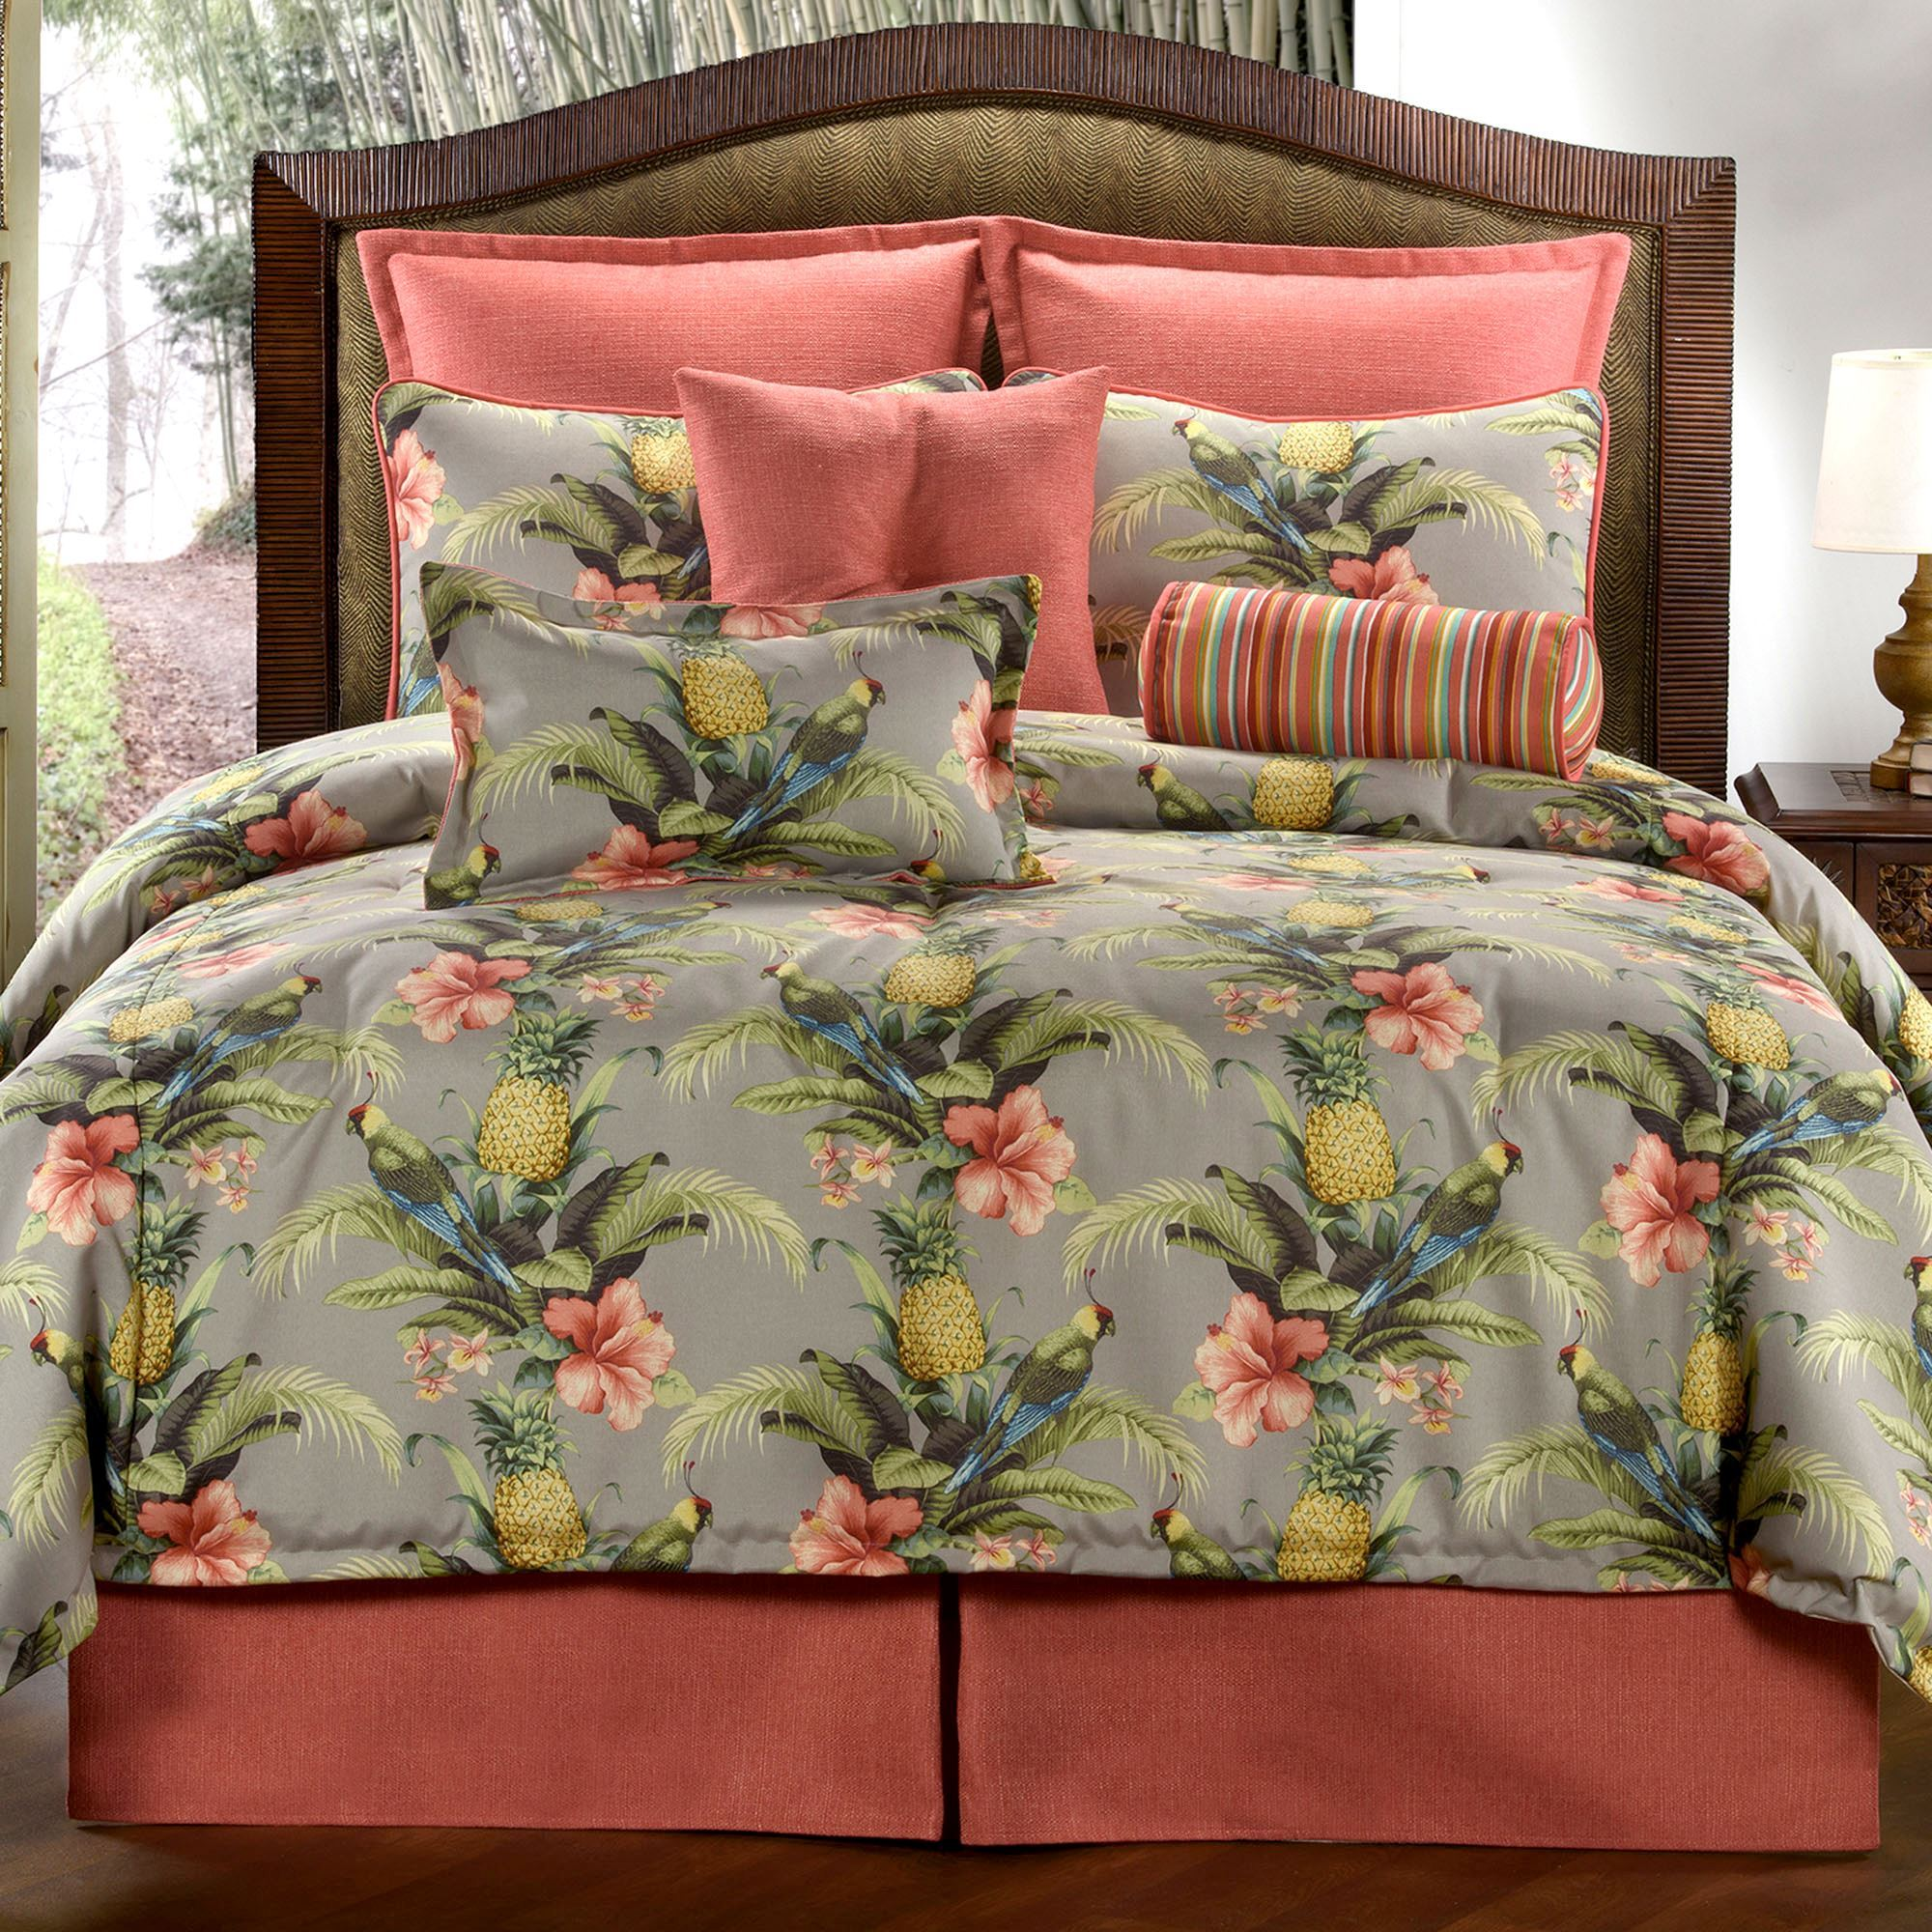 Polly Island Tropical Parrot Comforter Bedding